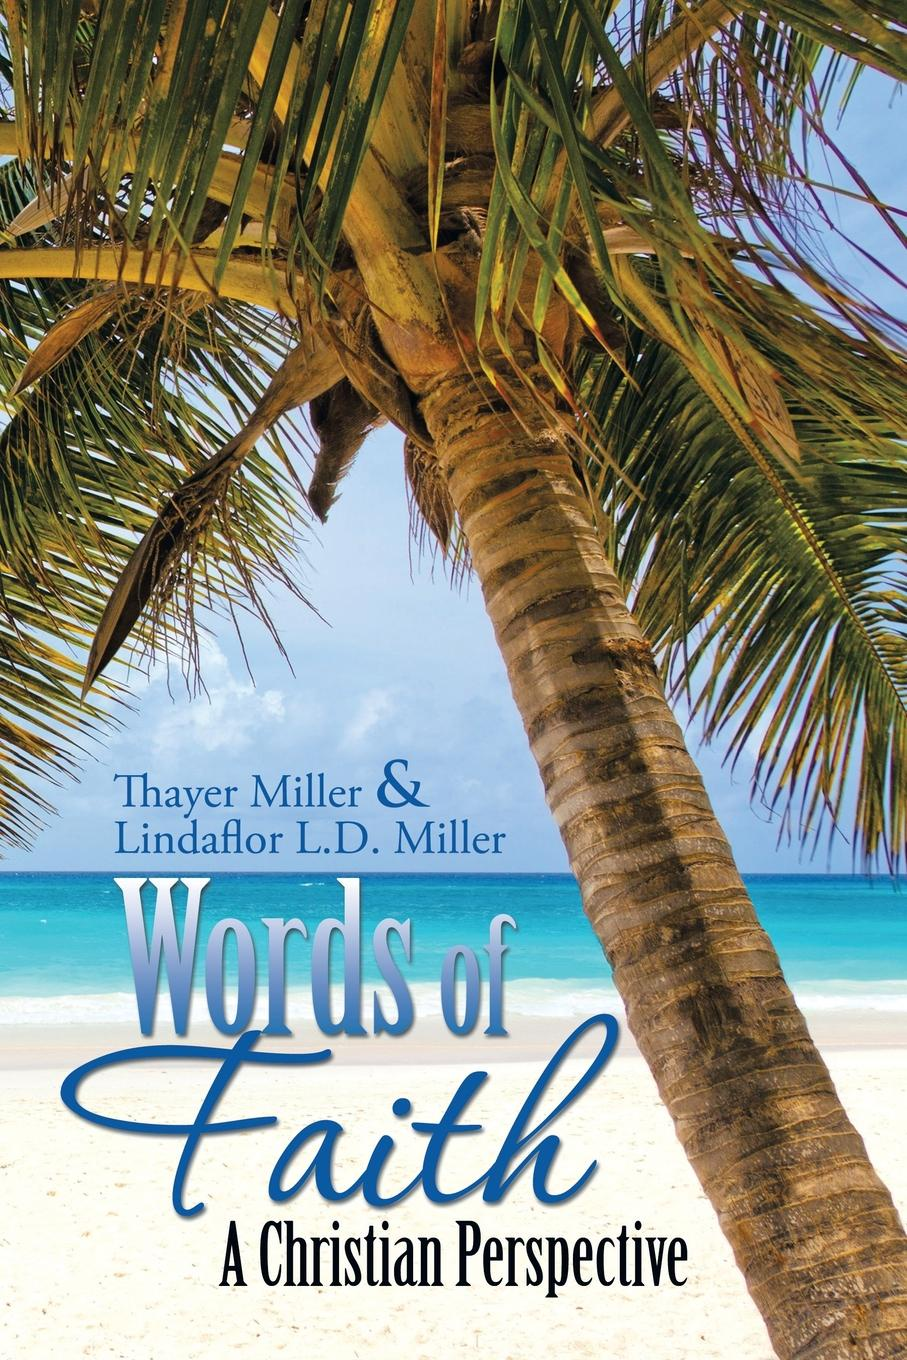 Thayer Miller, LindaFlor L.D. Miller Words of Faith. A Christian Perspective A CRITICAL VIEW OF RELIGION, SOCIETY AND THE DESTINY OF MANKIND thayer miller lindaflor l d miller words of faith a christian perspective a critical view of religion society and the destiny of mankind